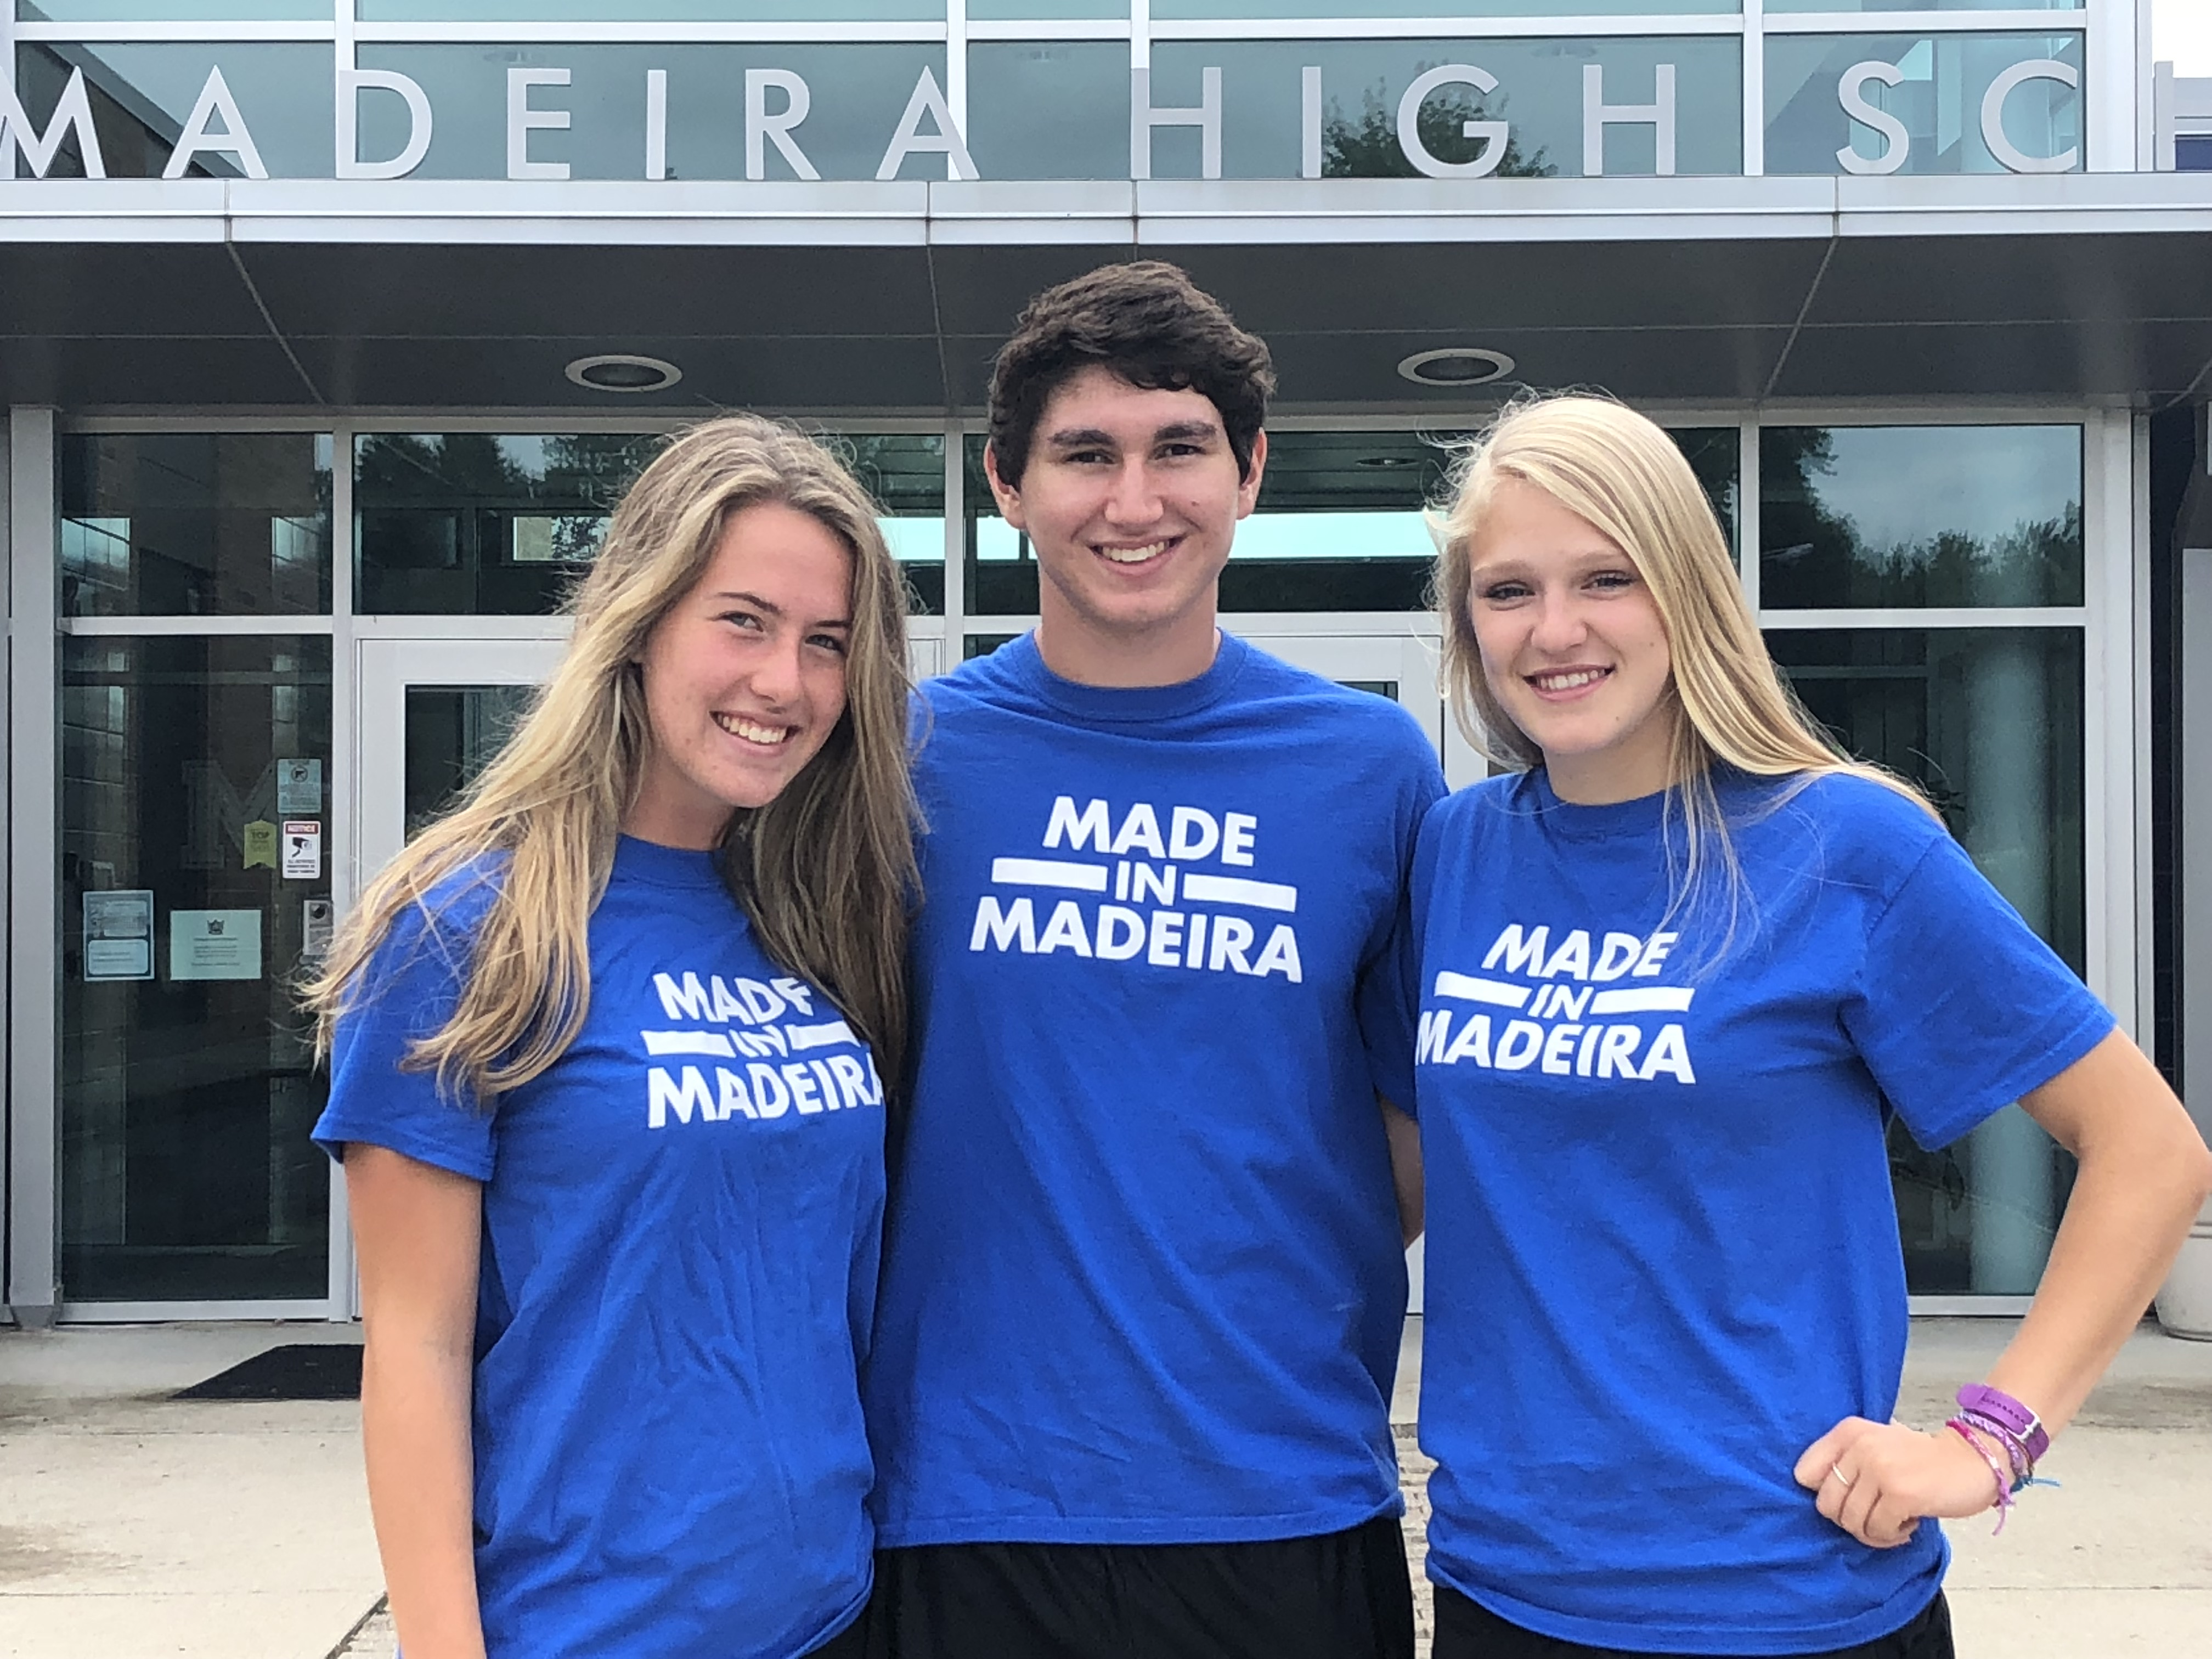 Made in Madeira Tshirts